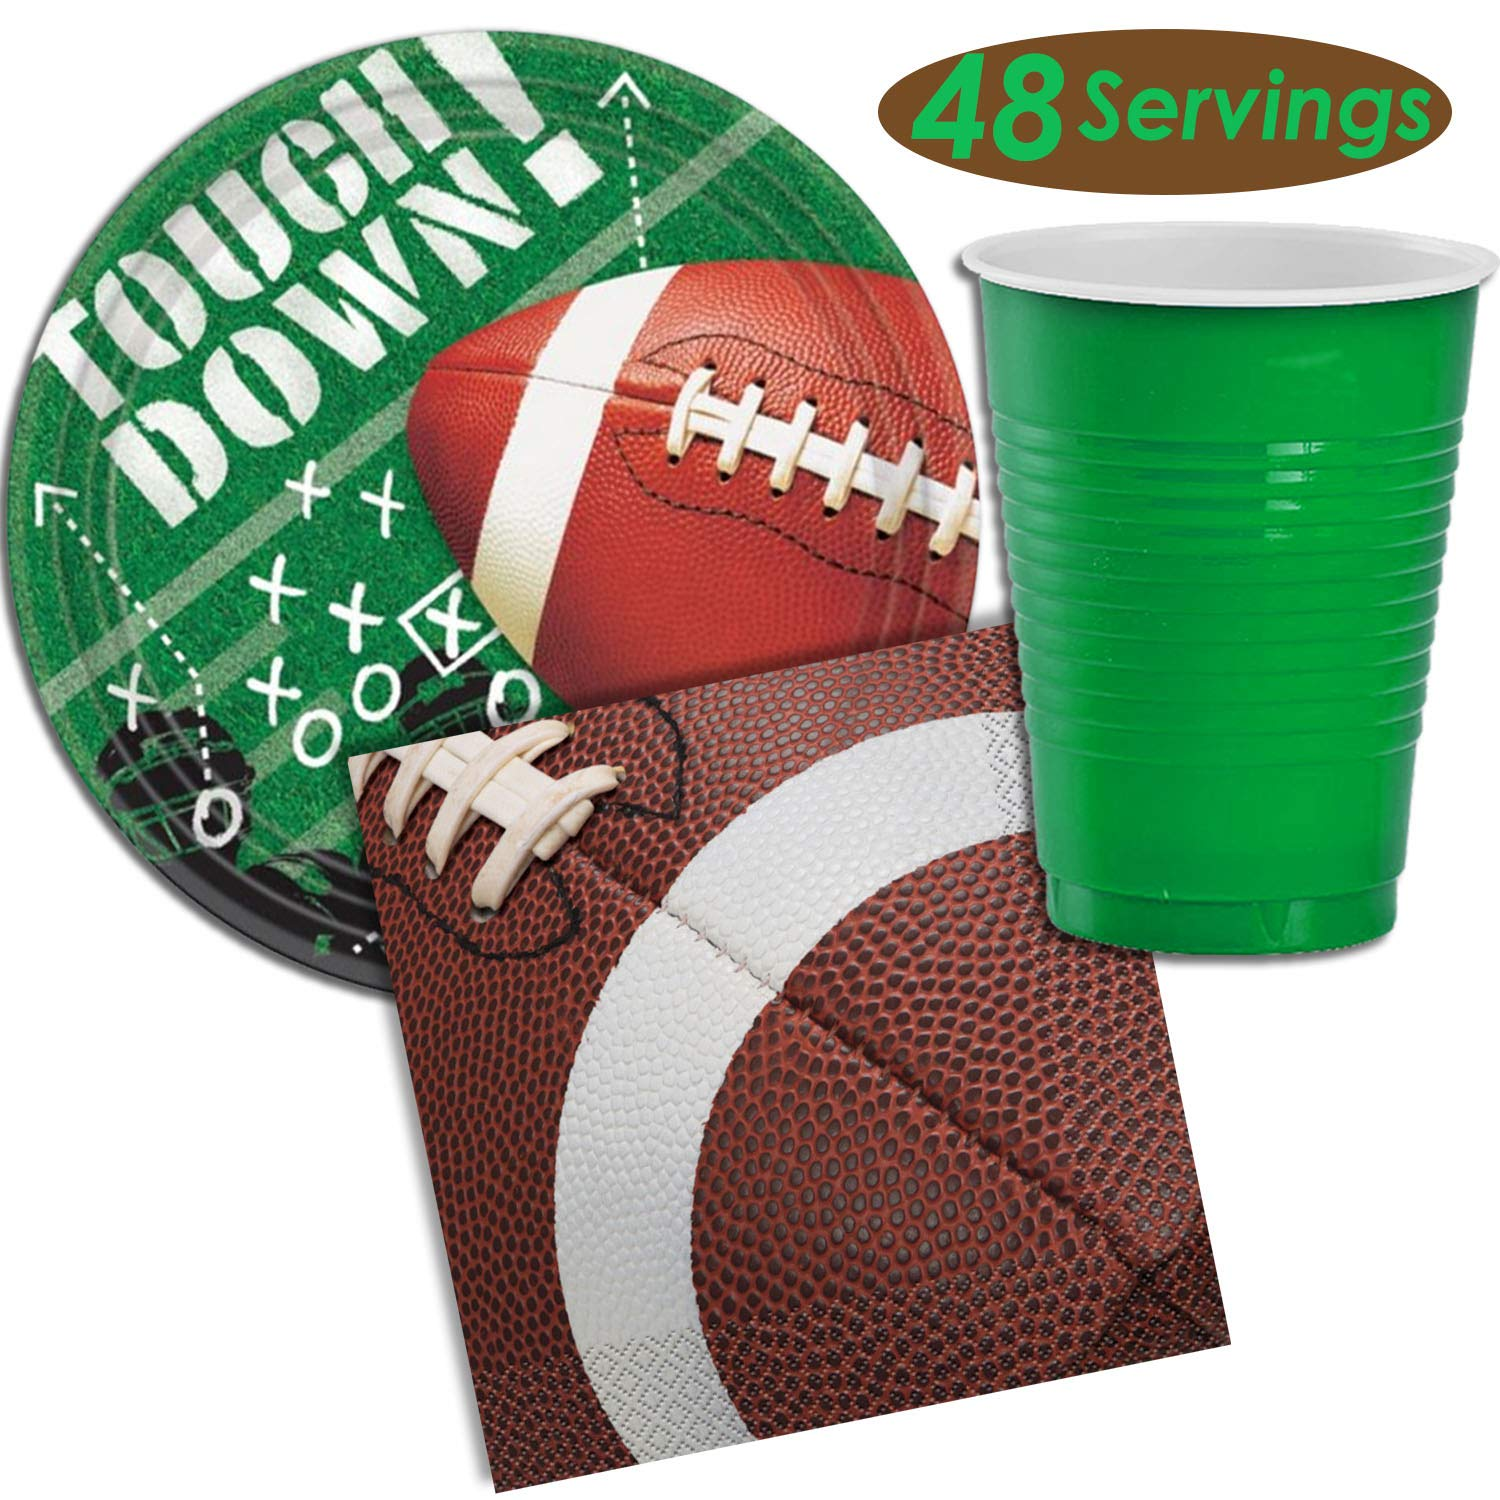 Football Party Supplies - 48 Servings - Dinner plates, Party cups, Napkins